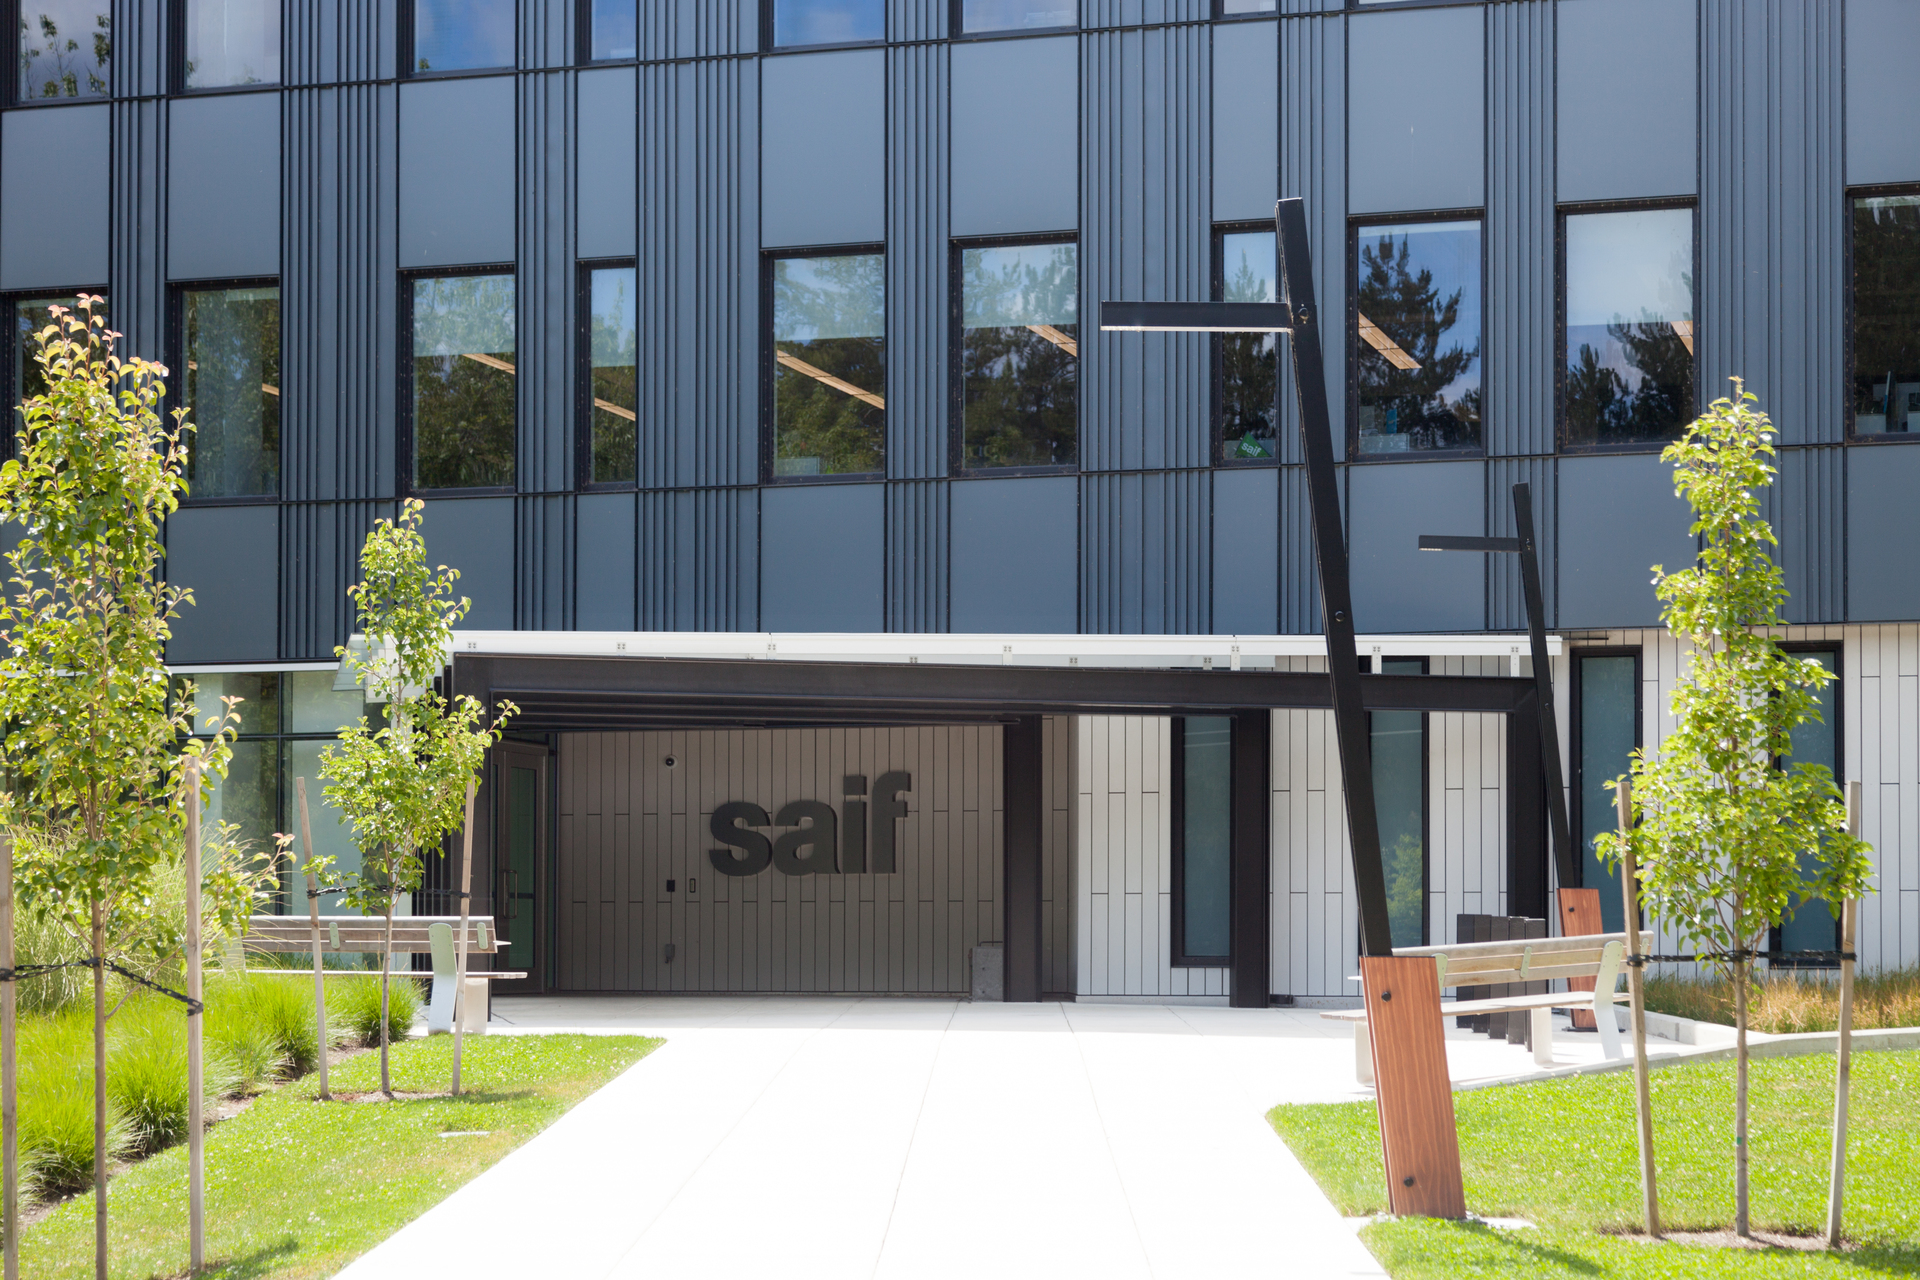 Featuring our Tandem Tilt pole with the Lineal fixture. The new SAIF headquarters reflects the company's vision to be a responsible, forward-thinking, and collaborative organization. Designed as a 50-year building with low maintenance and durable materials, SAIF expects this to result in a significant reduction in utility cost.